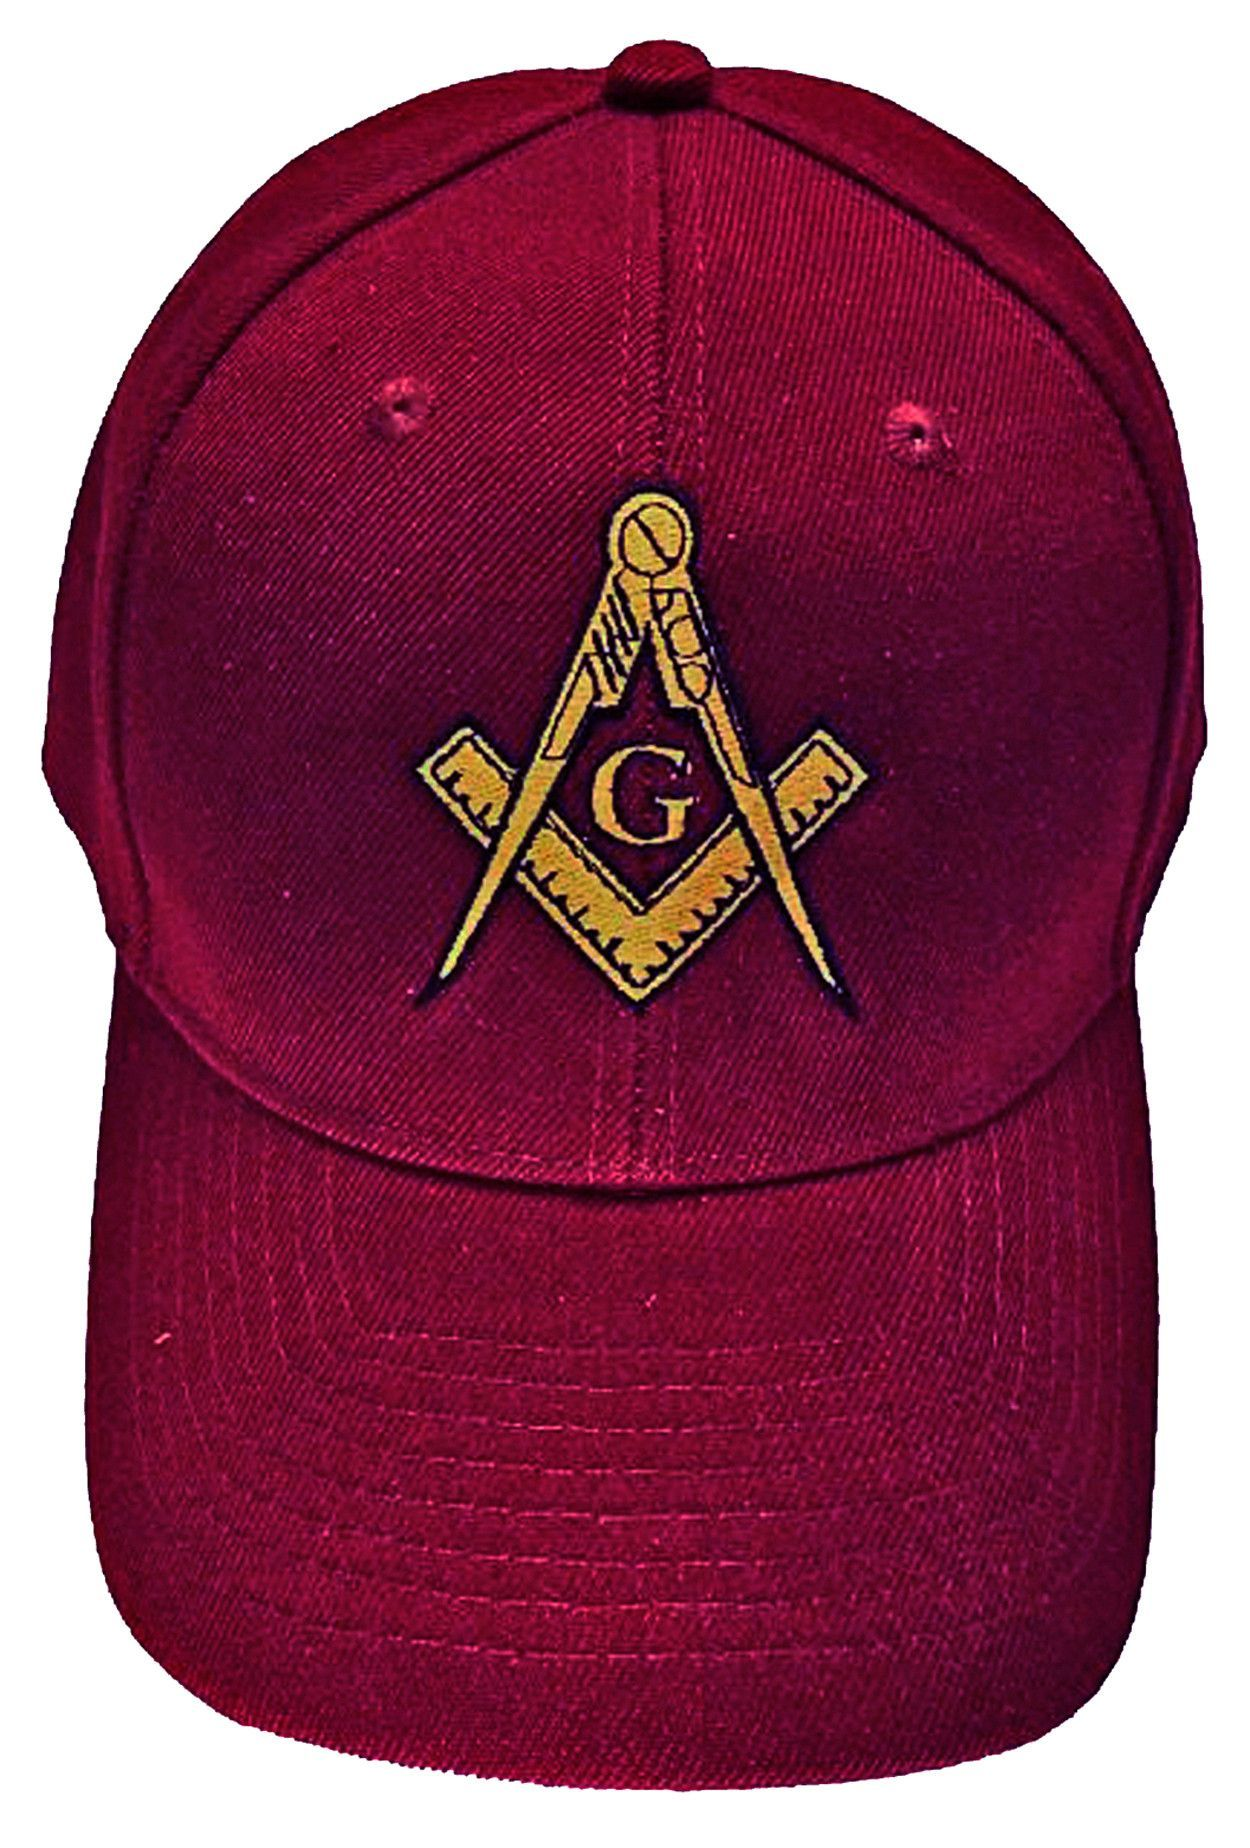 36ddcff55 Mason Hat Maroon Baseball Cap with Masonic Logo Freemasons Shriners Prince  Hall Lodge Headwear